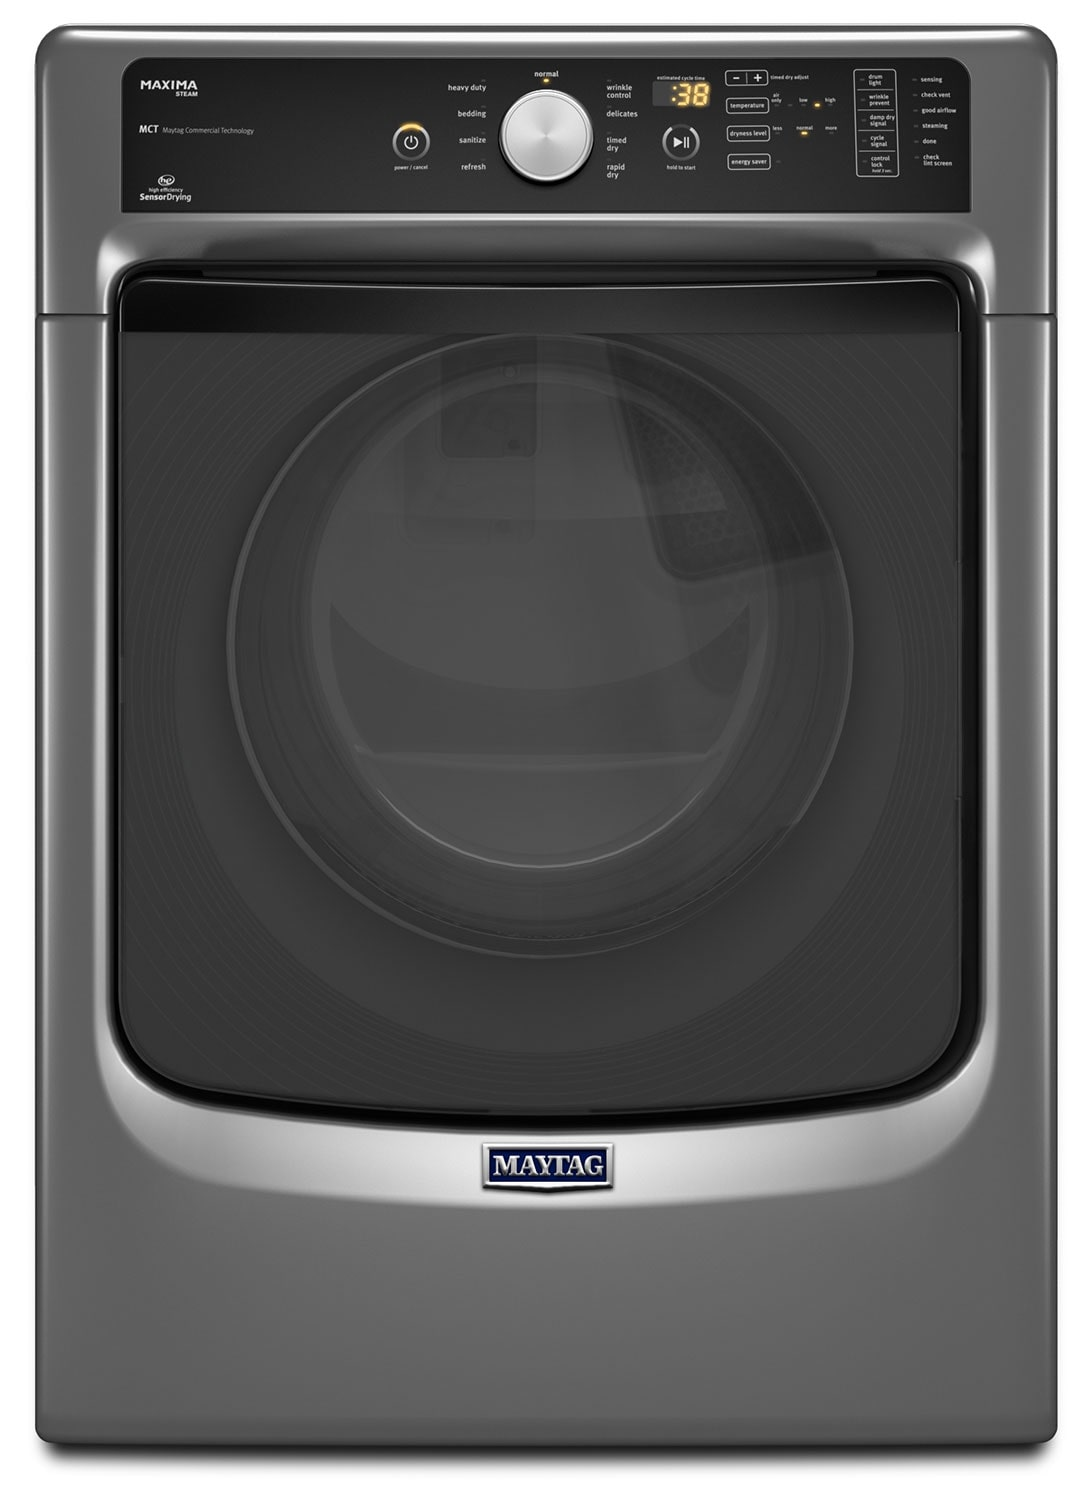 Washers and Dryers - Maytag Metallic Slate Electric Dryer (7.3 Cu. Ft.) - YMED5100DC